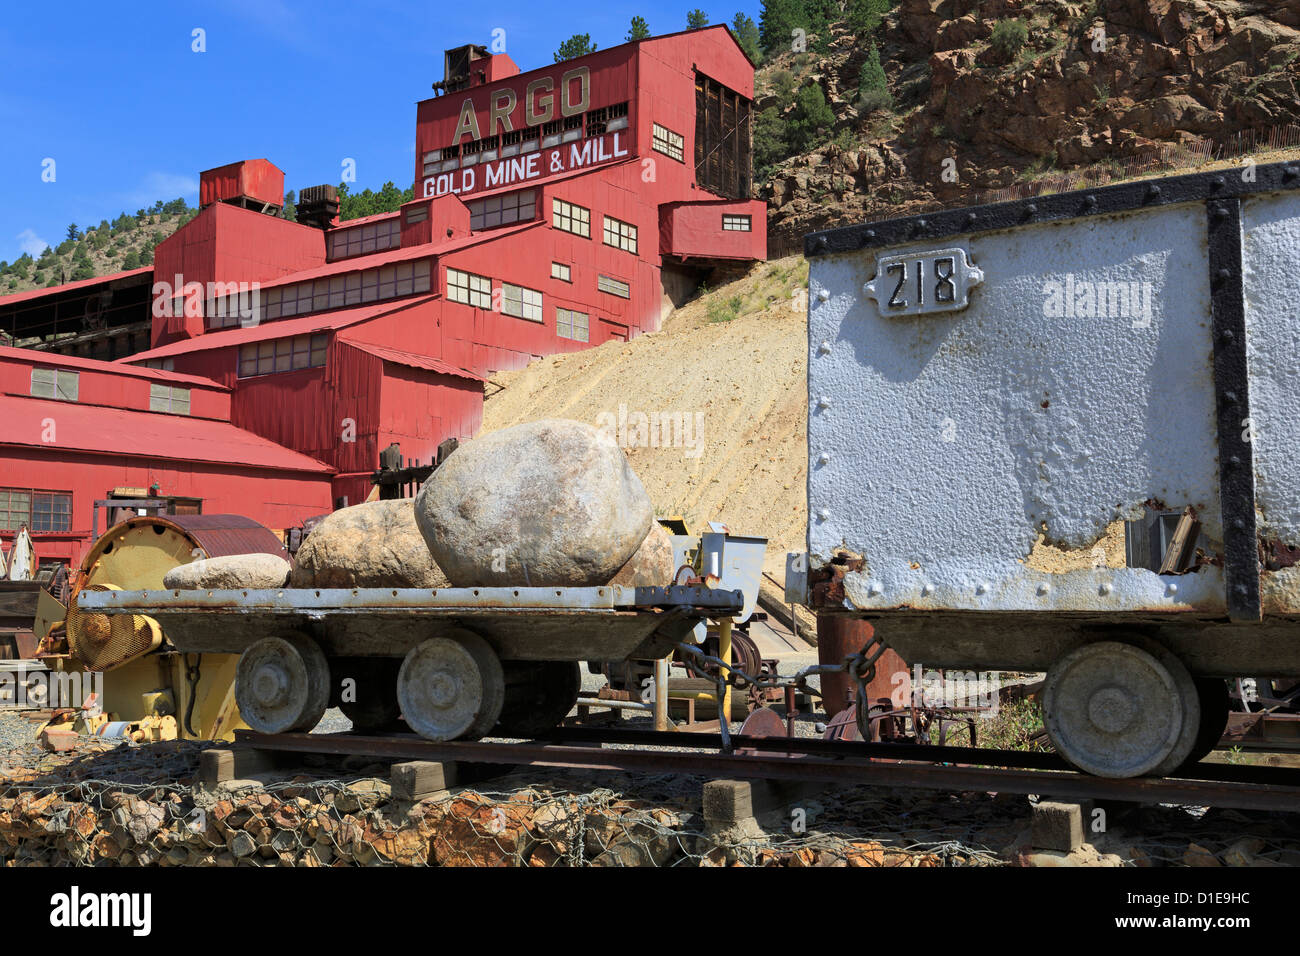 Argo Gold Mine and Mill Museum, Idaho Springs, Colorado, United States of America, North America - Stock Image